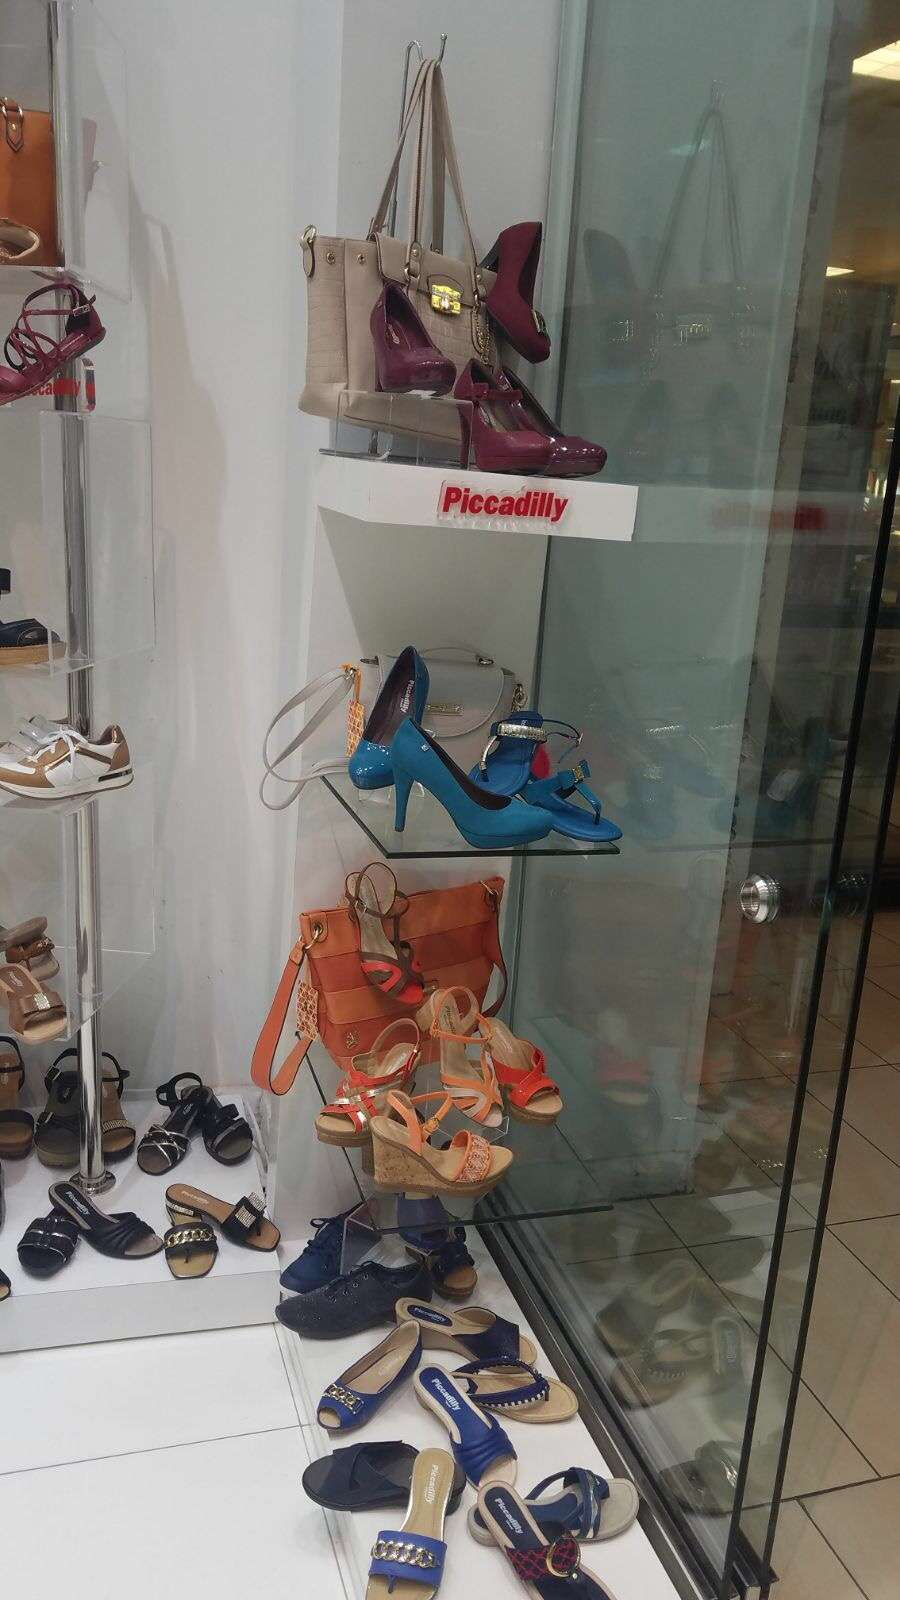 ISHOES STORE AT WESTLAND MALL, PICCADILLY AND BEIRA RIO SHOES - shoe store  | Photo 6 of 10 | Address: 1675 W 49th St, Hialeah, FL 33012, USA | Phone: (305) 819-2996